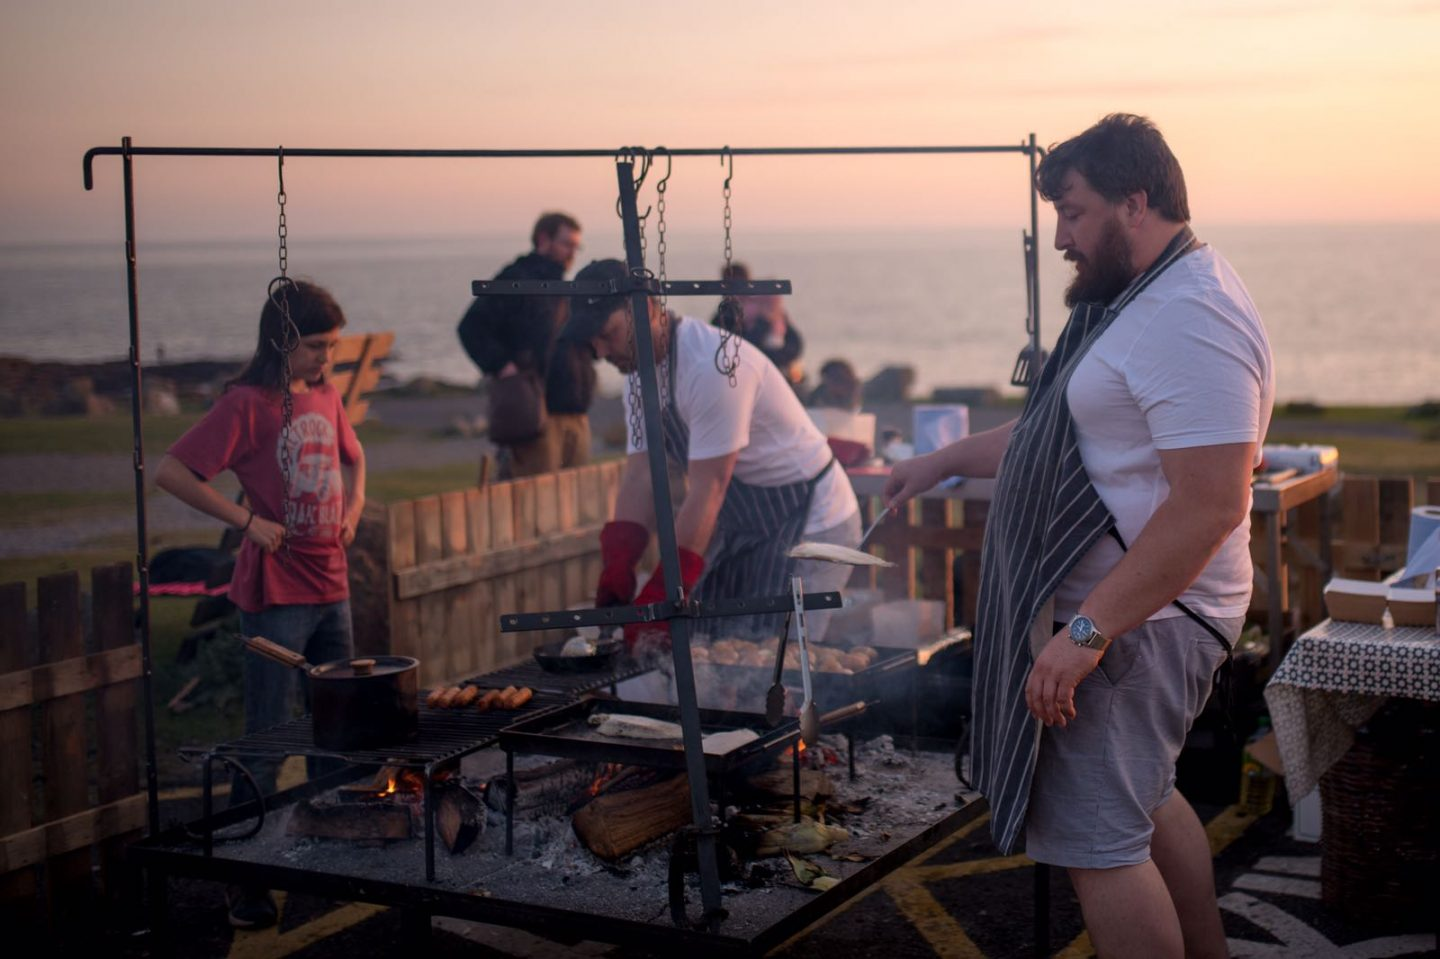 You can now eat freshly cooked seafood on Ogmore beach thanks to 'The Two Anchors'